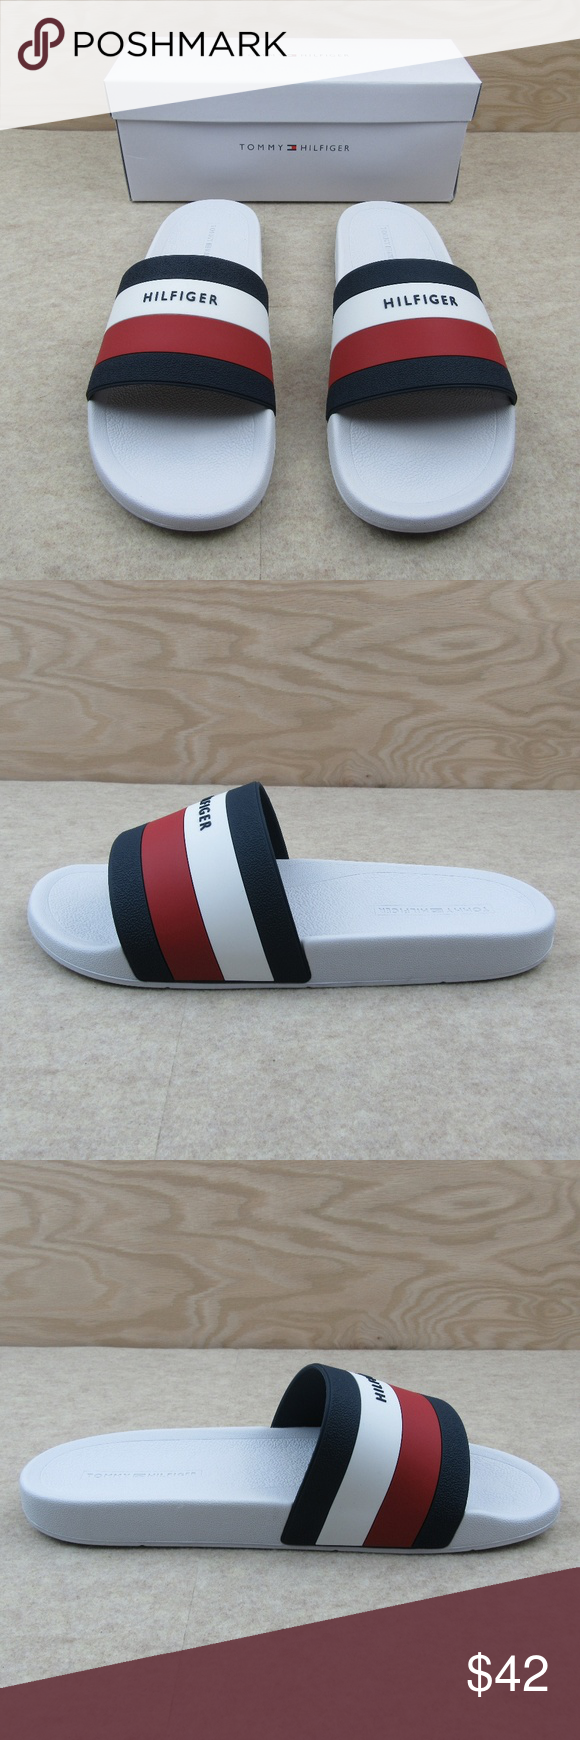 6ed7b5de7cc Tommy Hilfiger Men s Earthy Slides Sandals Size 12 Tommy Hilfiger Men s Earthy  Slides Sandals White Style - Slides Men s Size 12 Brand NEW with Box Makes  a ...